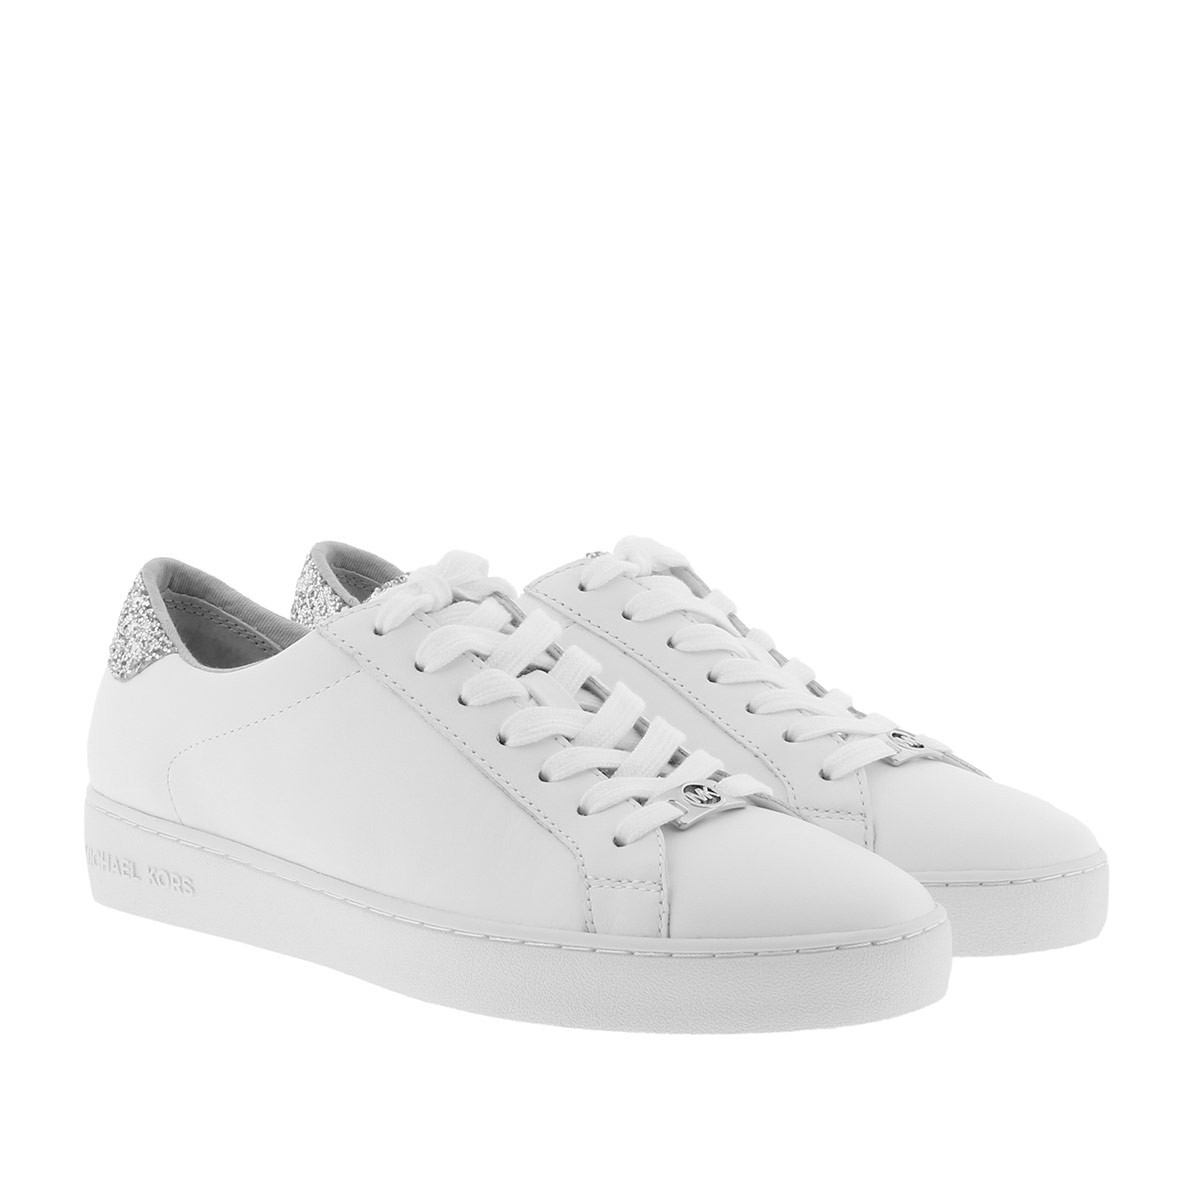 Michael Kors Sneakers - Irving Lace Up Sneaker Optic White/Silver - in weiß - für Damen